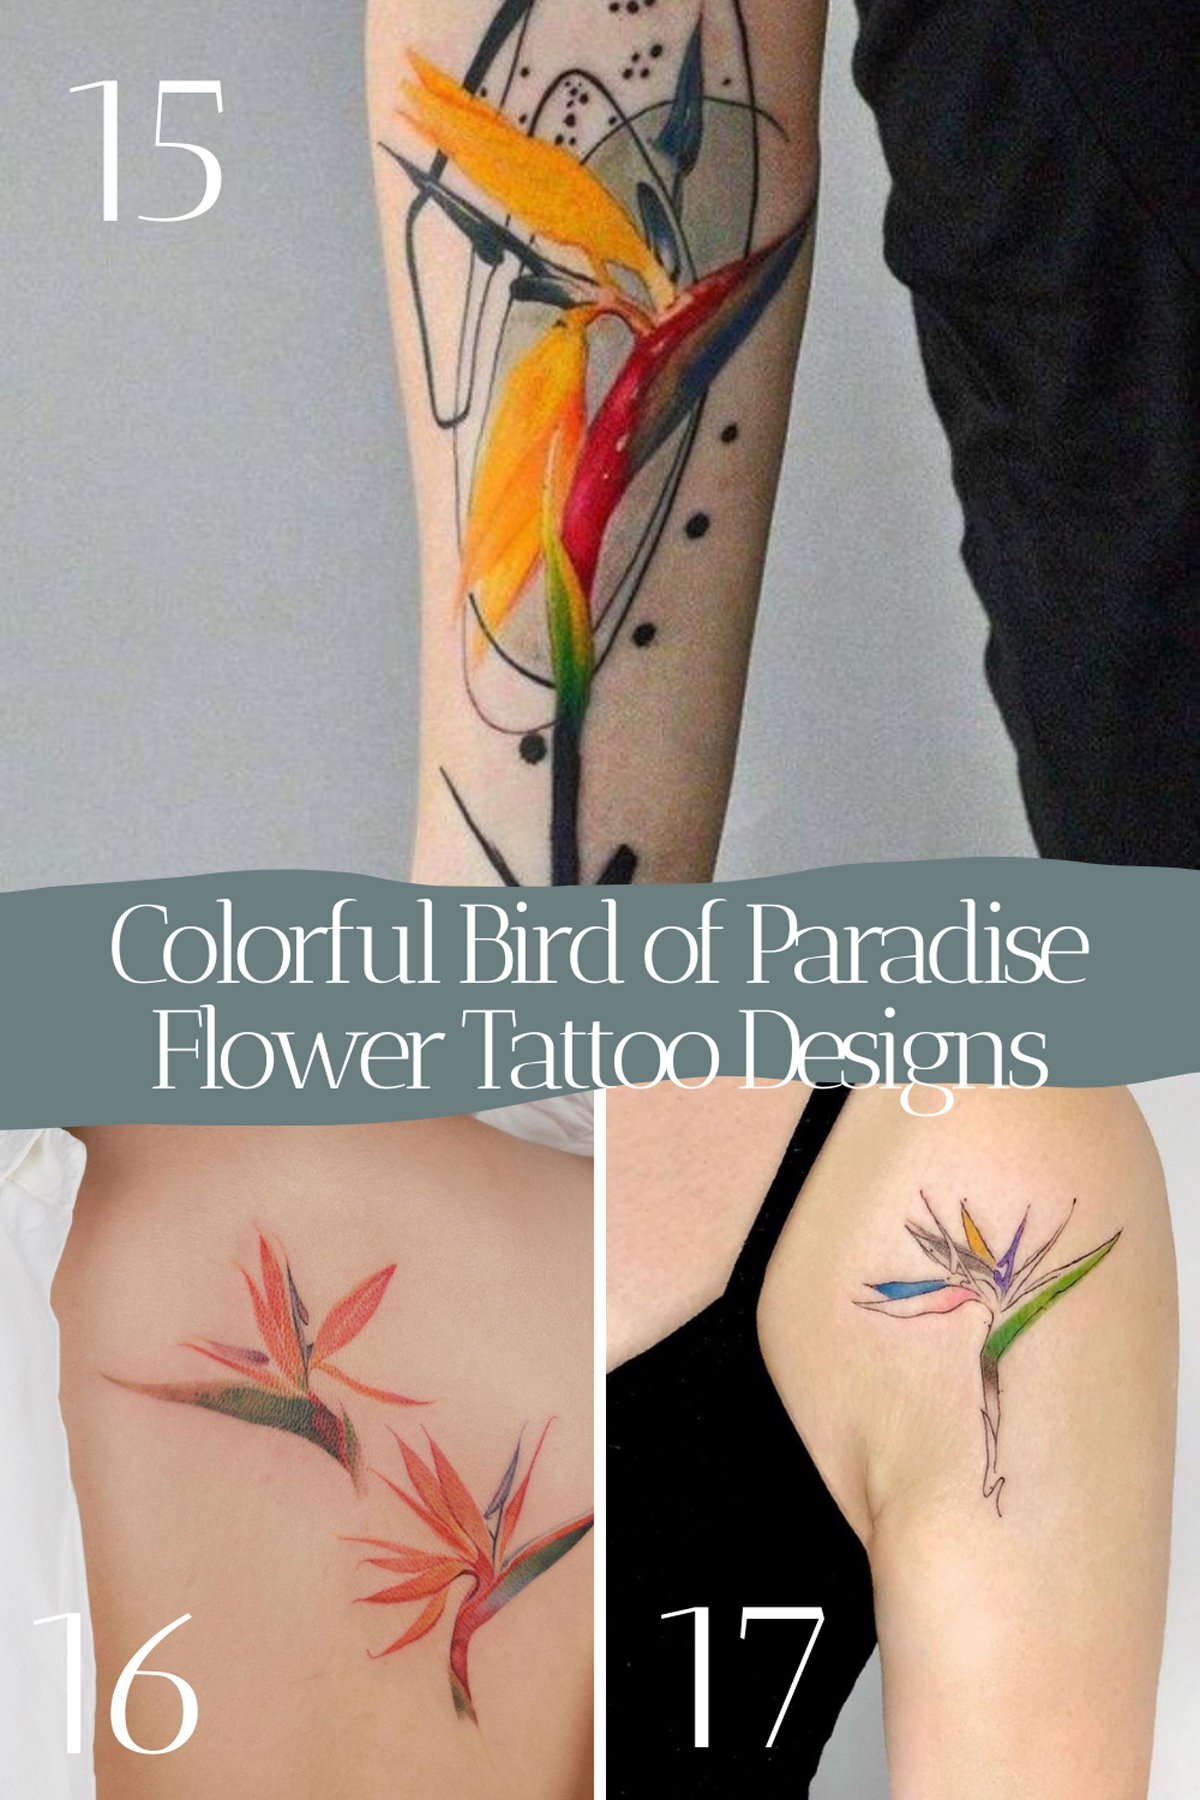 Colorful Flower Tattoo Sleeves